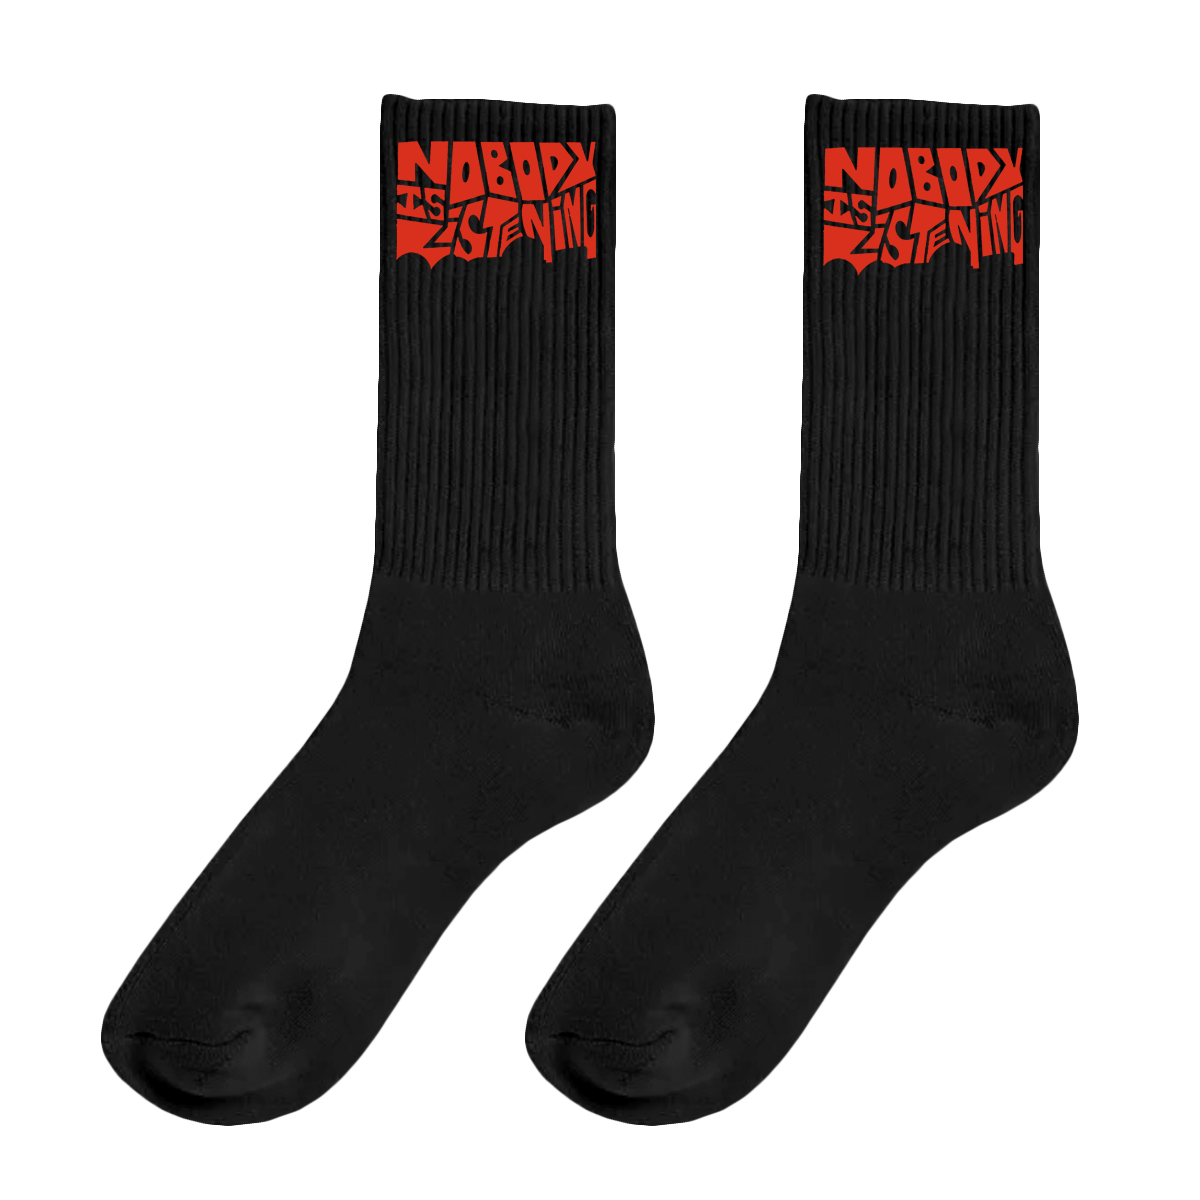 NIL Black Socks with Red Font